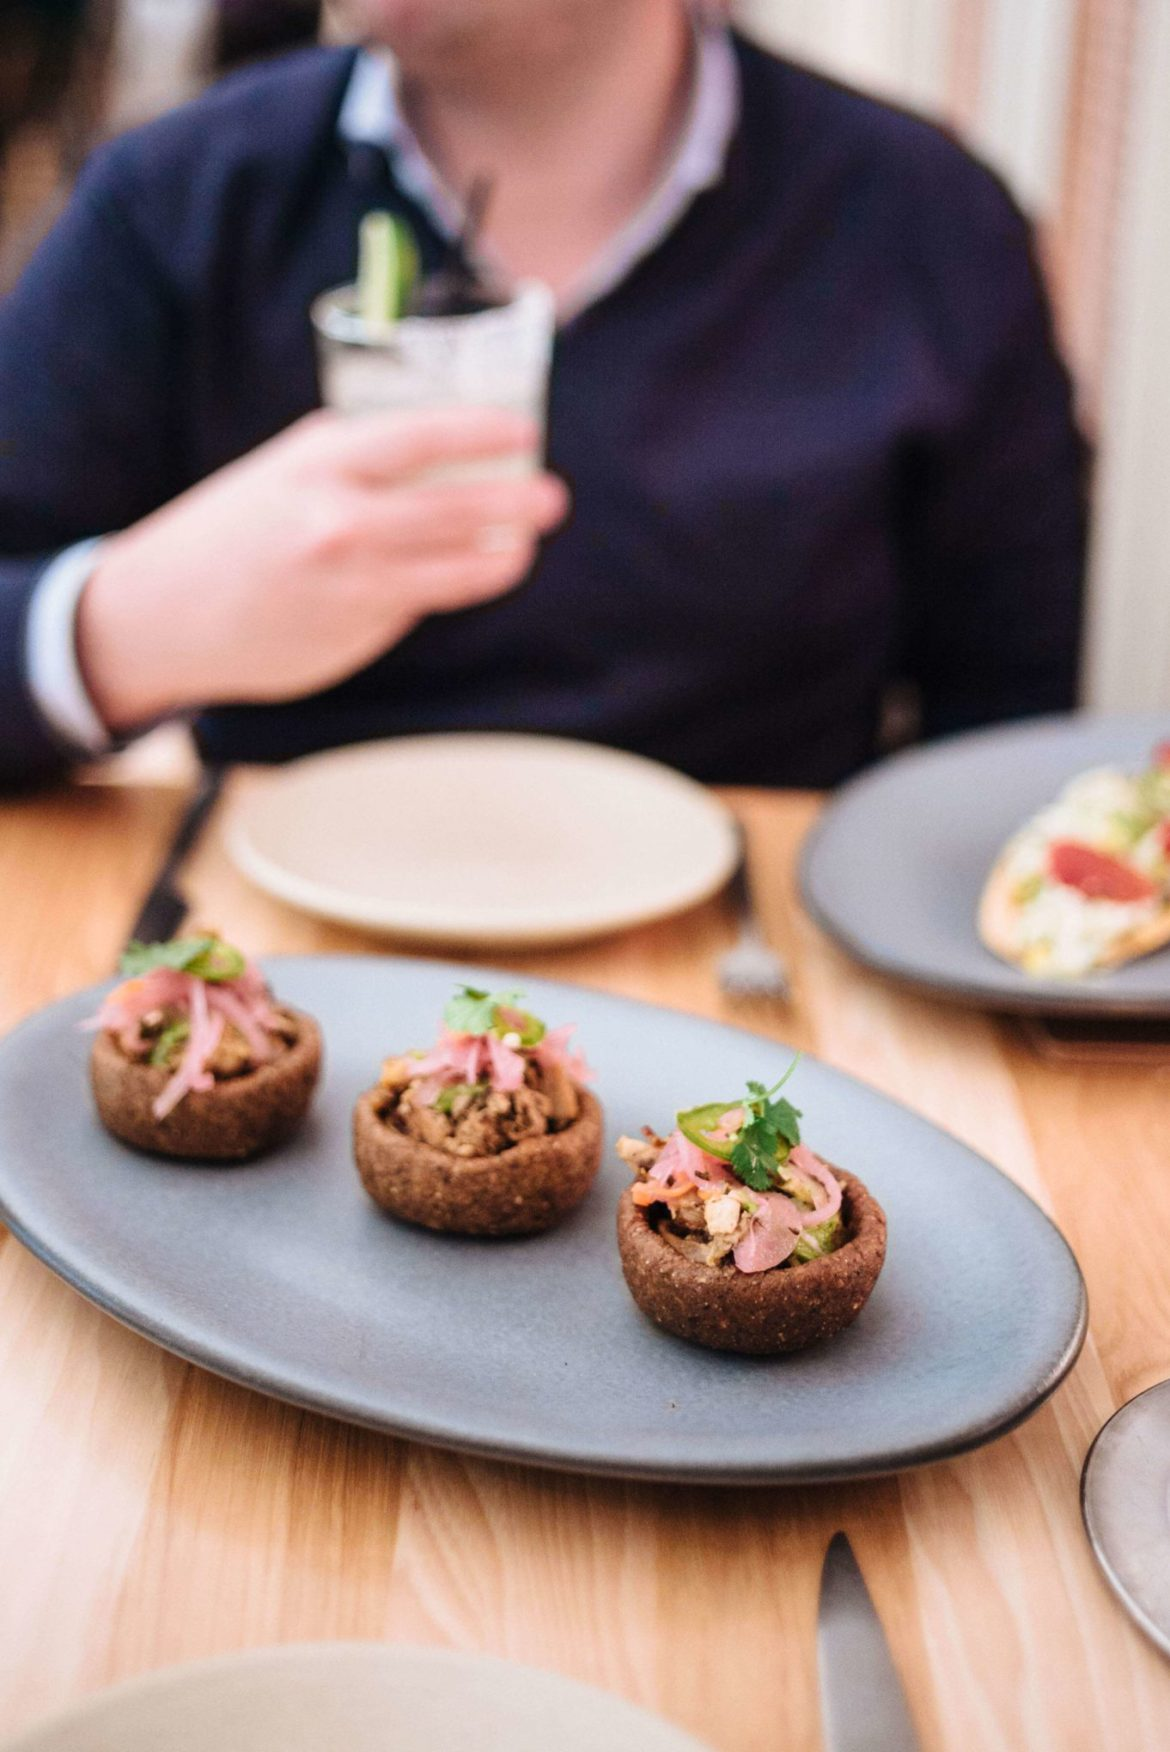 The Taste Edit Culinary and Travel bloggers and photographers visits ATX Cocina the best Modern Mexican Austin restaurant - try the sope cochinita pibil, bean puree, habanero-onion salsa